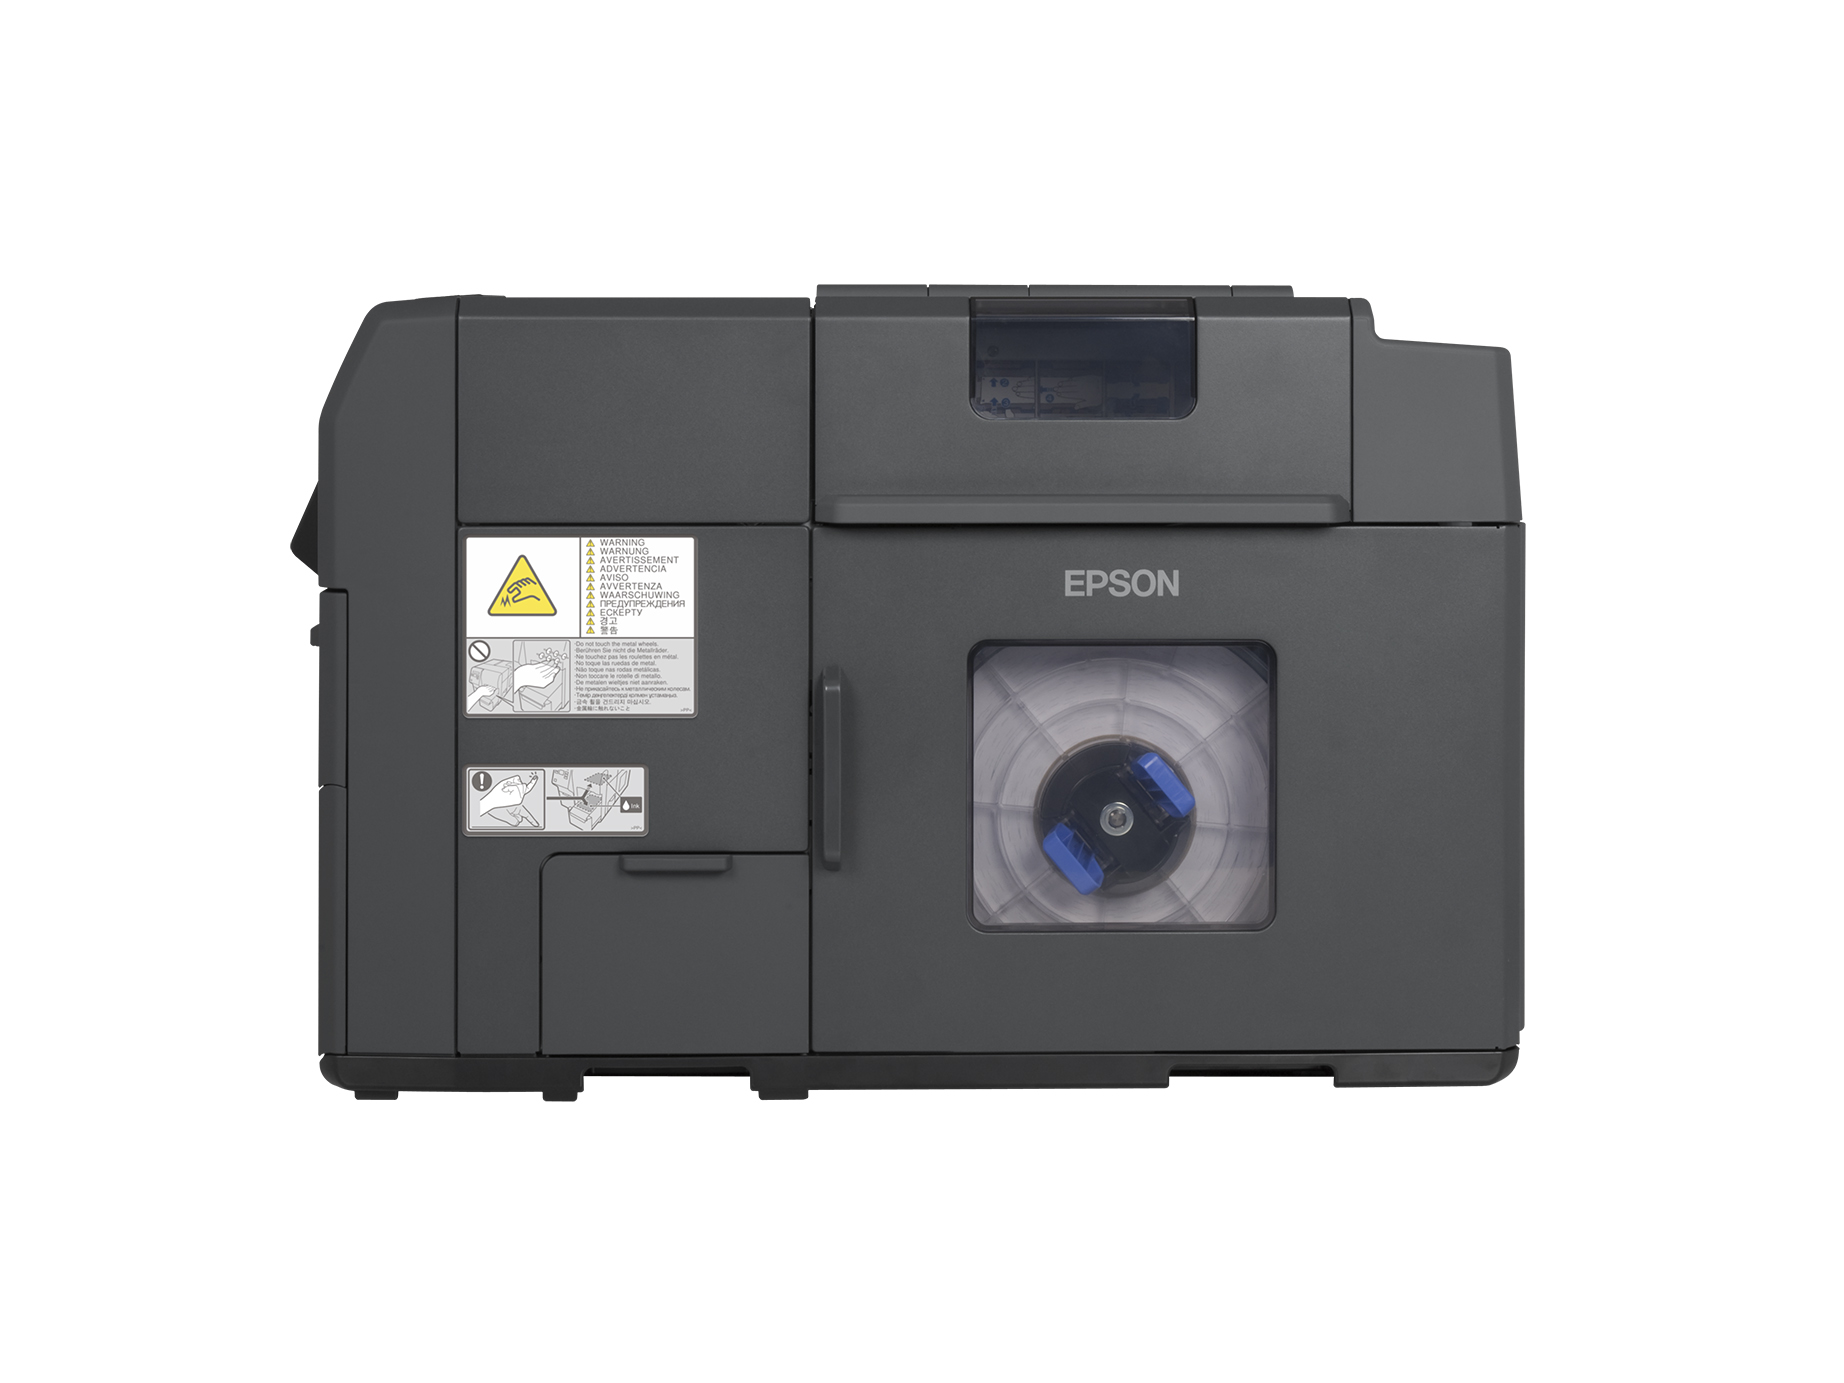 EPSON COLORWORKS C7500 INKJET LABEL PRINTER